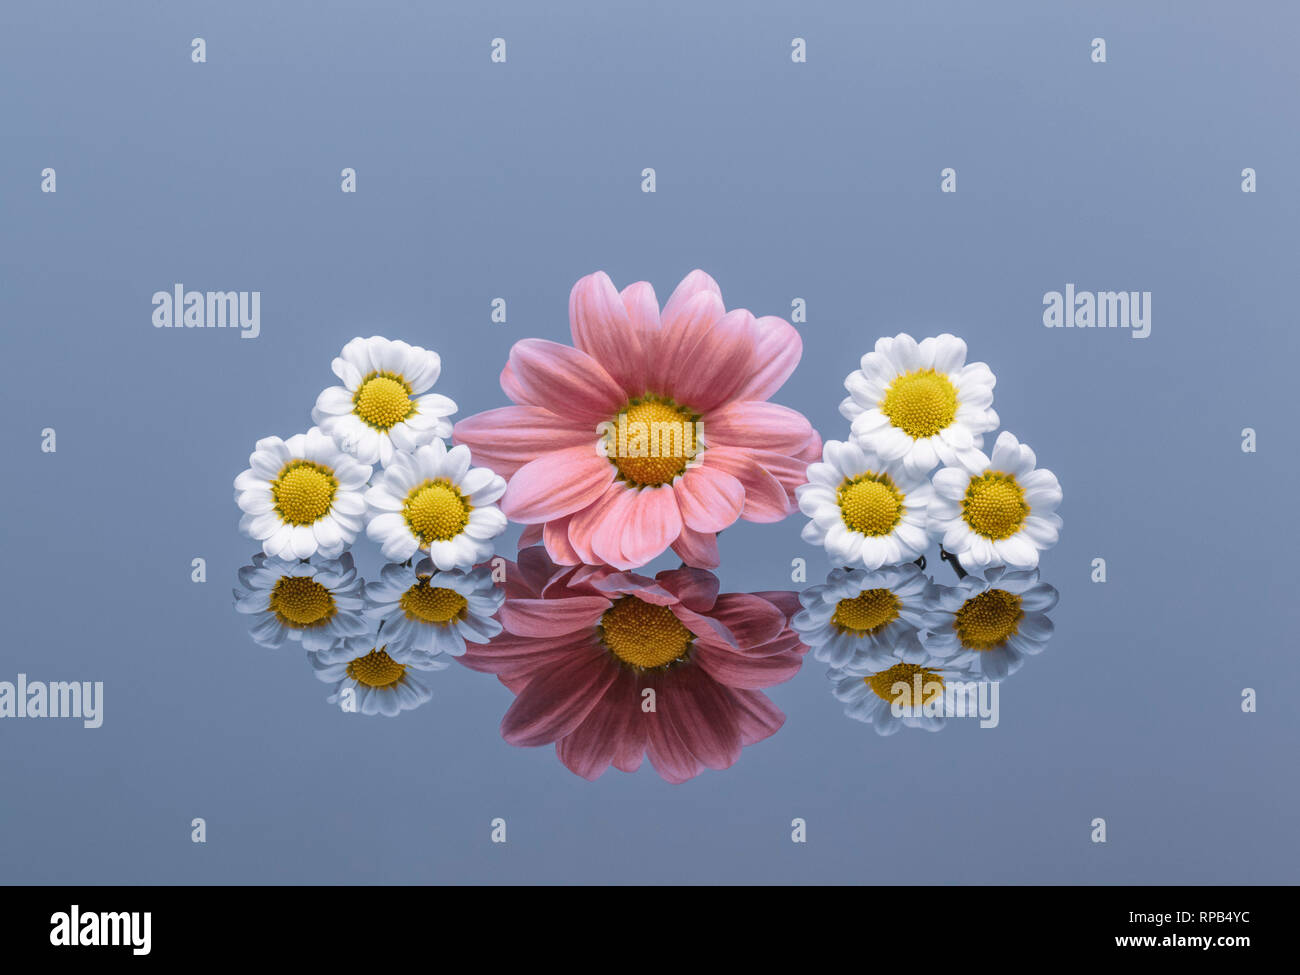 White and pink Chrysanthemums on reflective surface Stock Photo